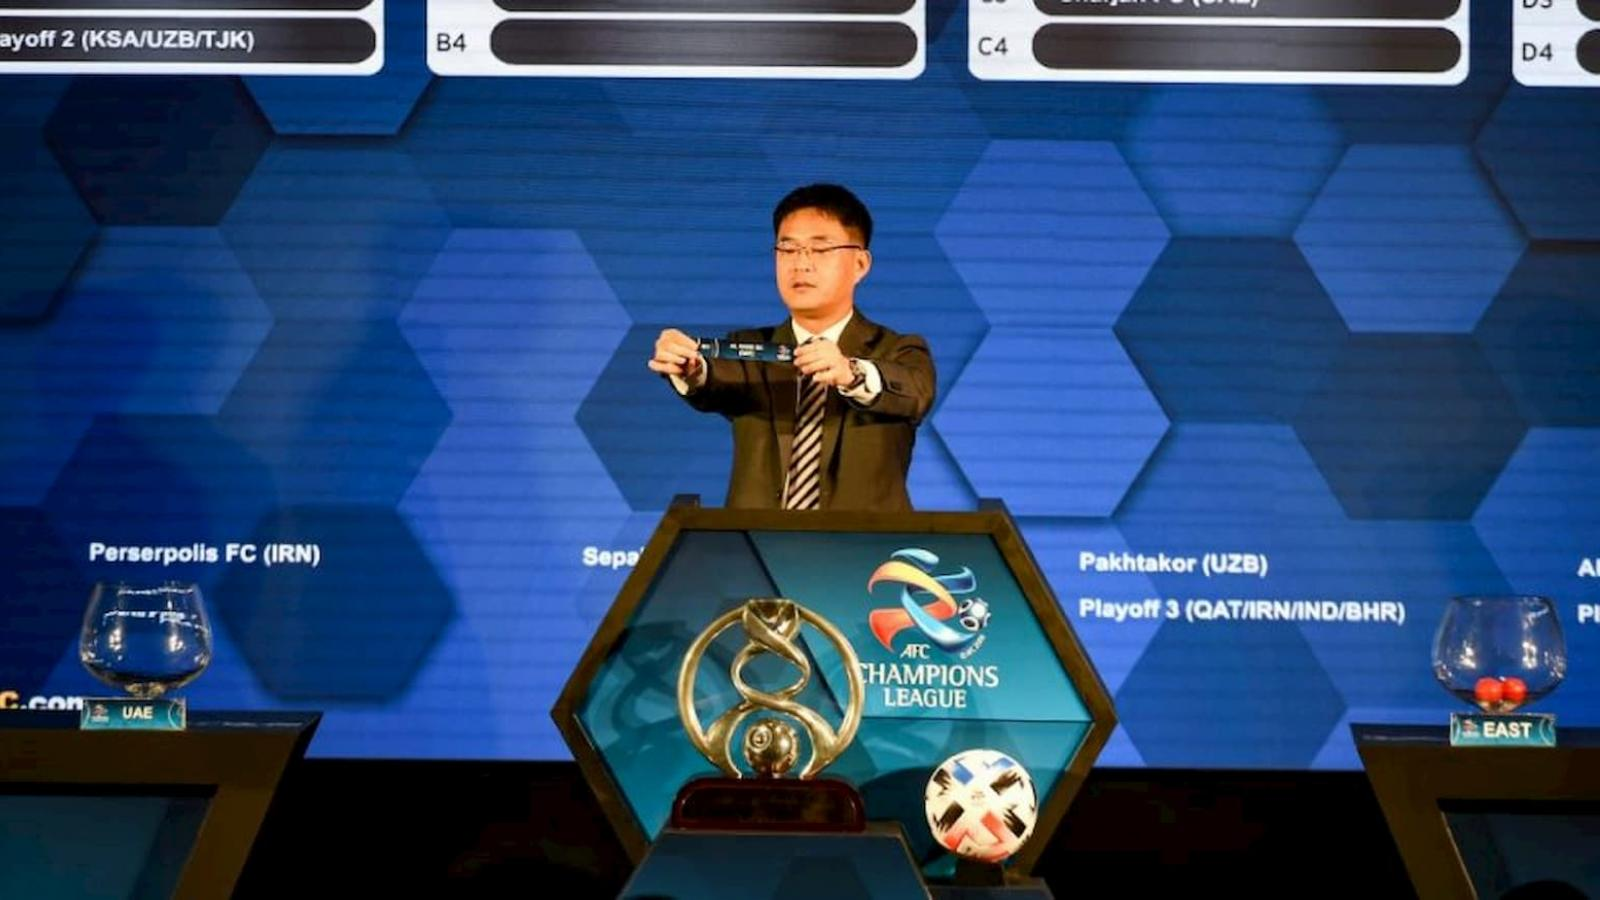 Qatar steps in to host AFC Champions League East Zone tournament